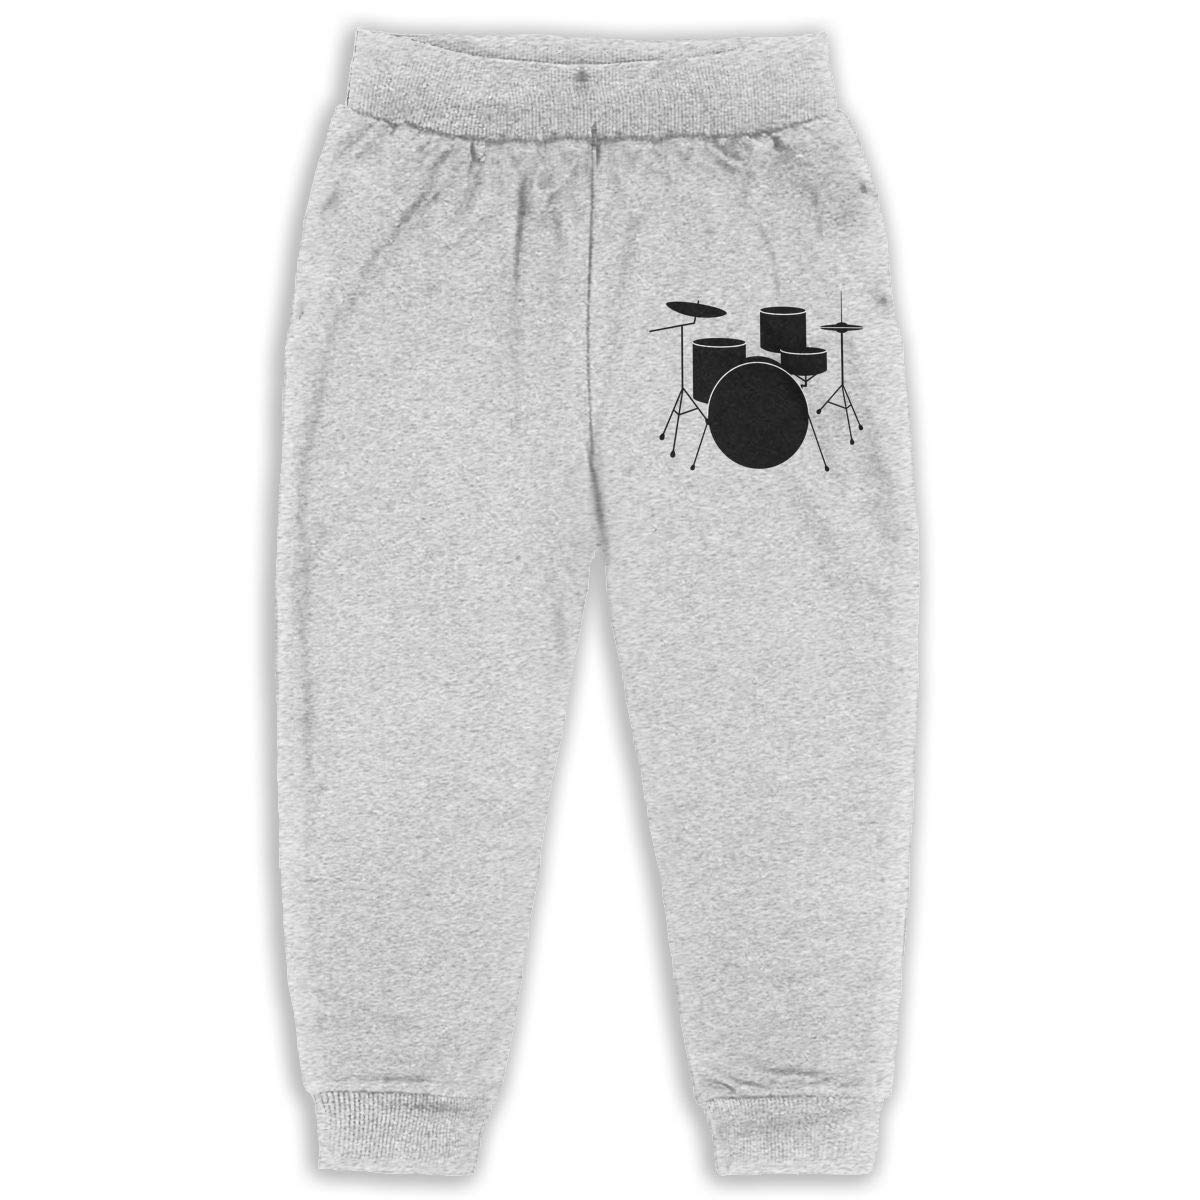 AaAarr Toddlers Drums Drawstring Sweatpants for Boys and Girls